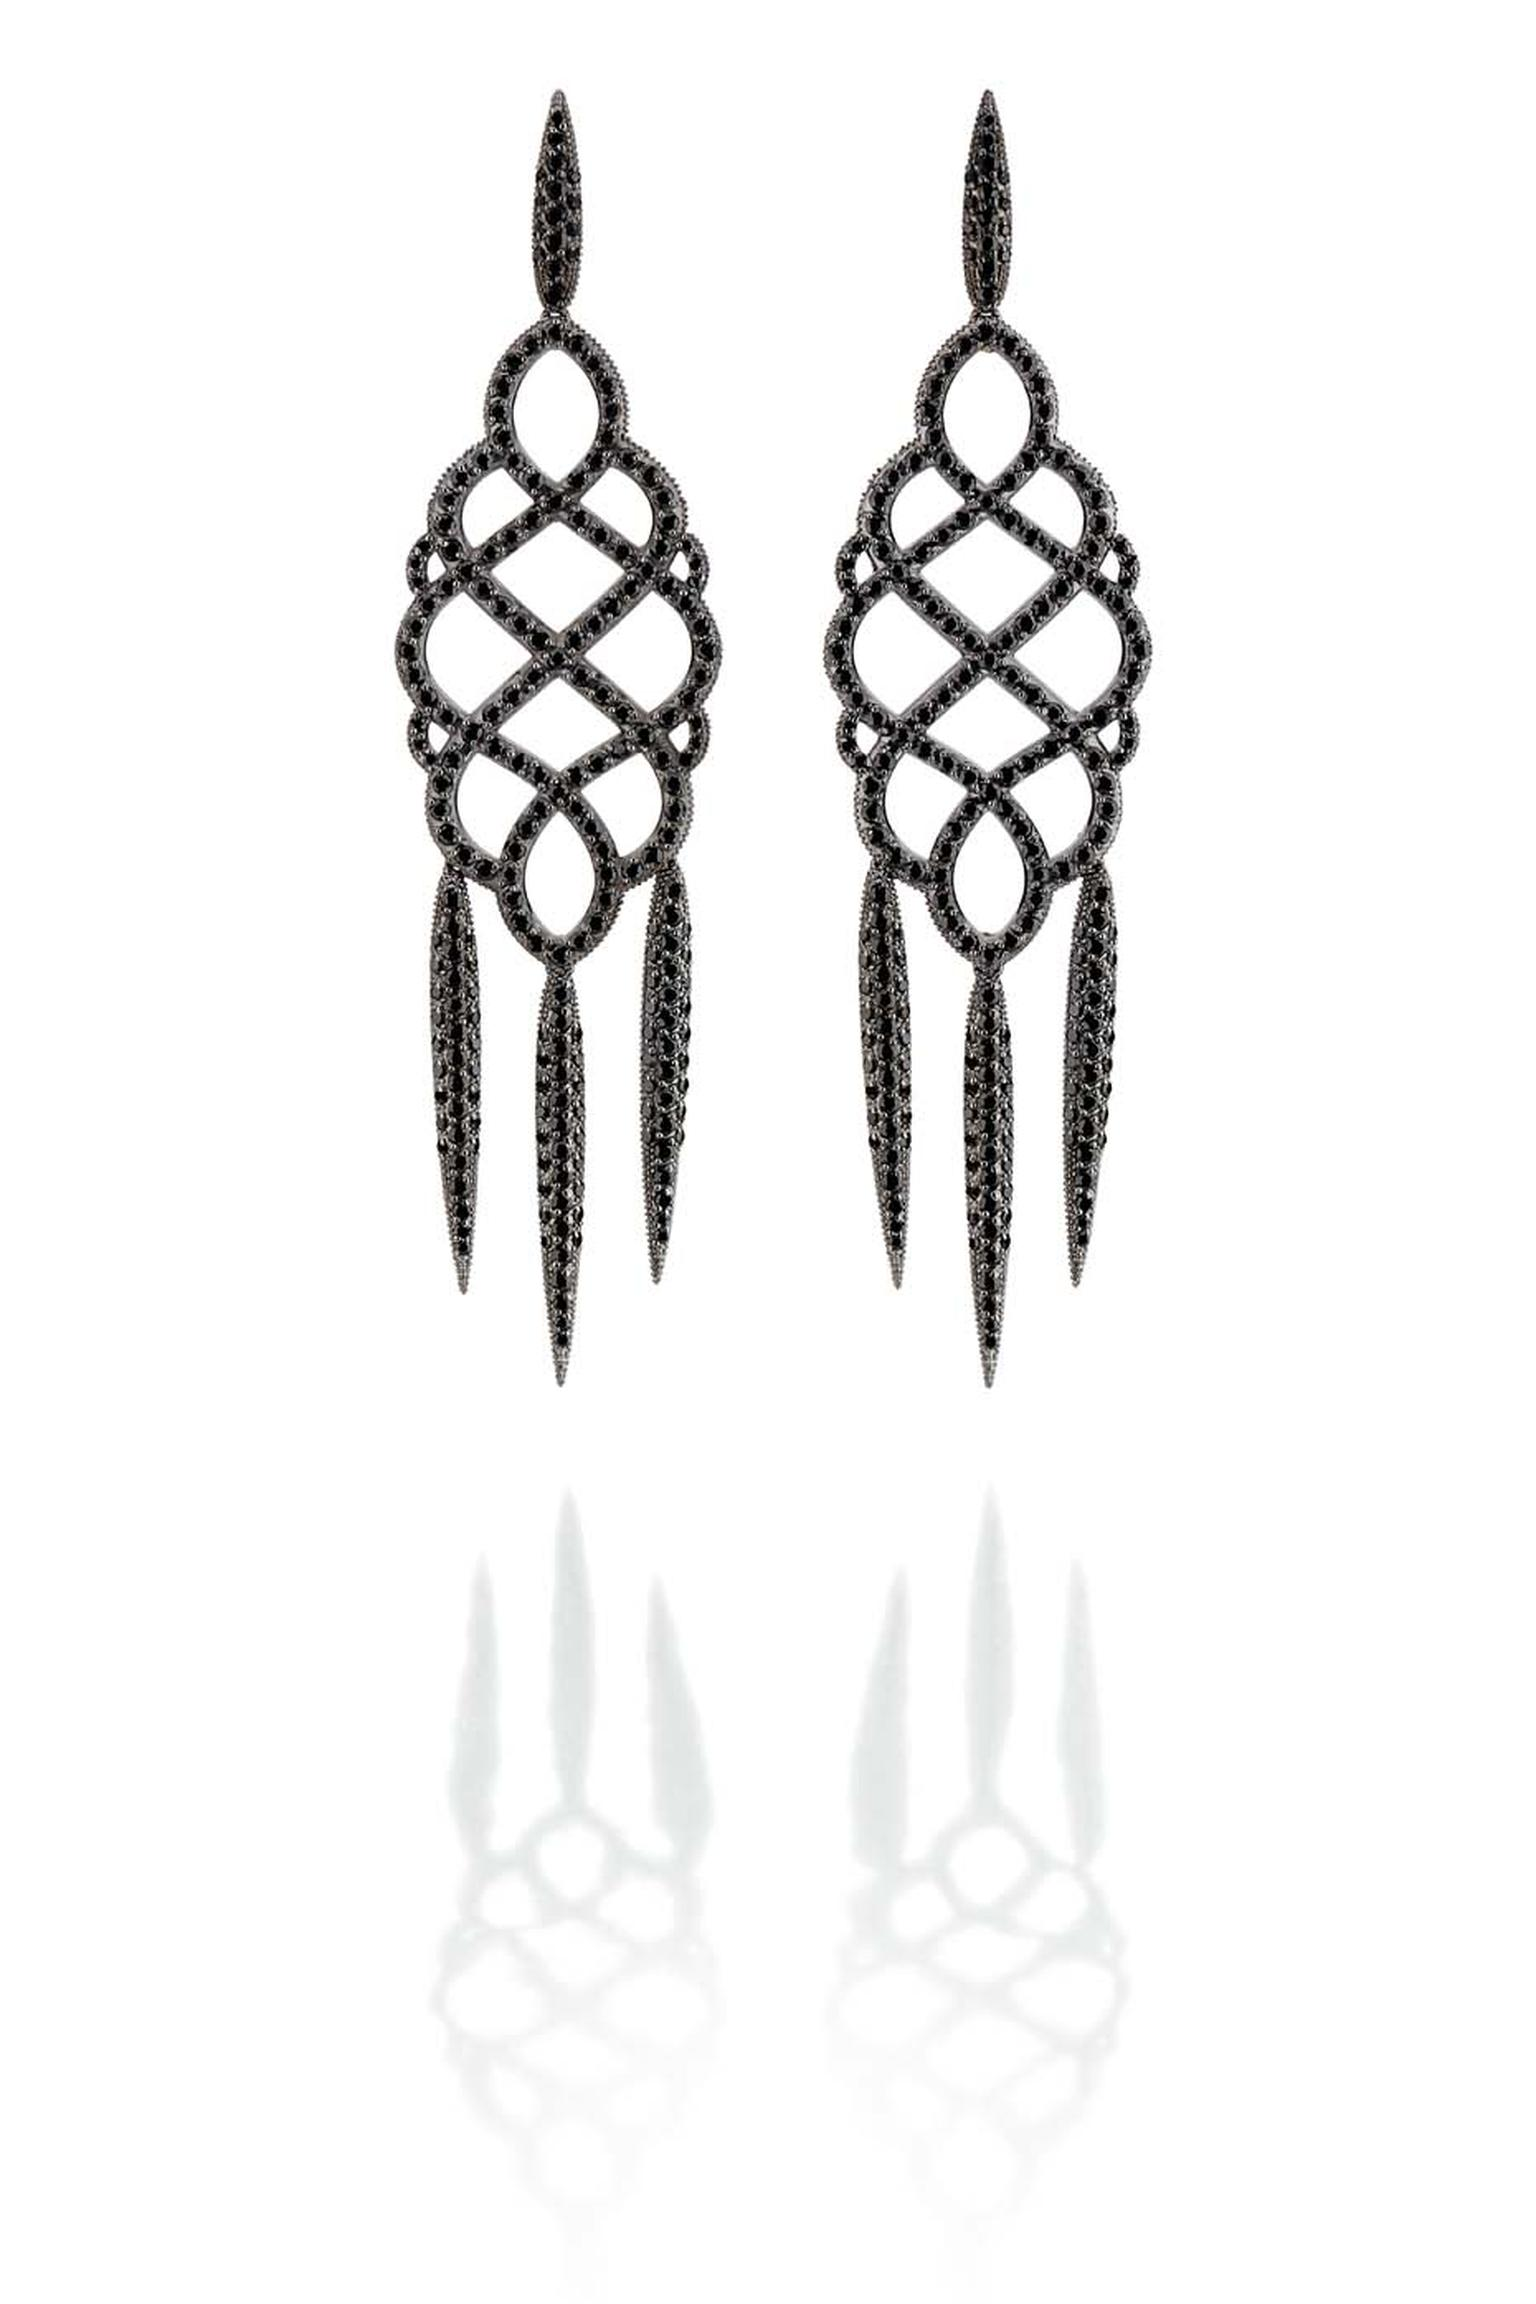 Carla Amorim Russia Collection Hermitage earrings in blackened gold and black diamonds, inspired by the Hermitage museum in Saint Petersburg